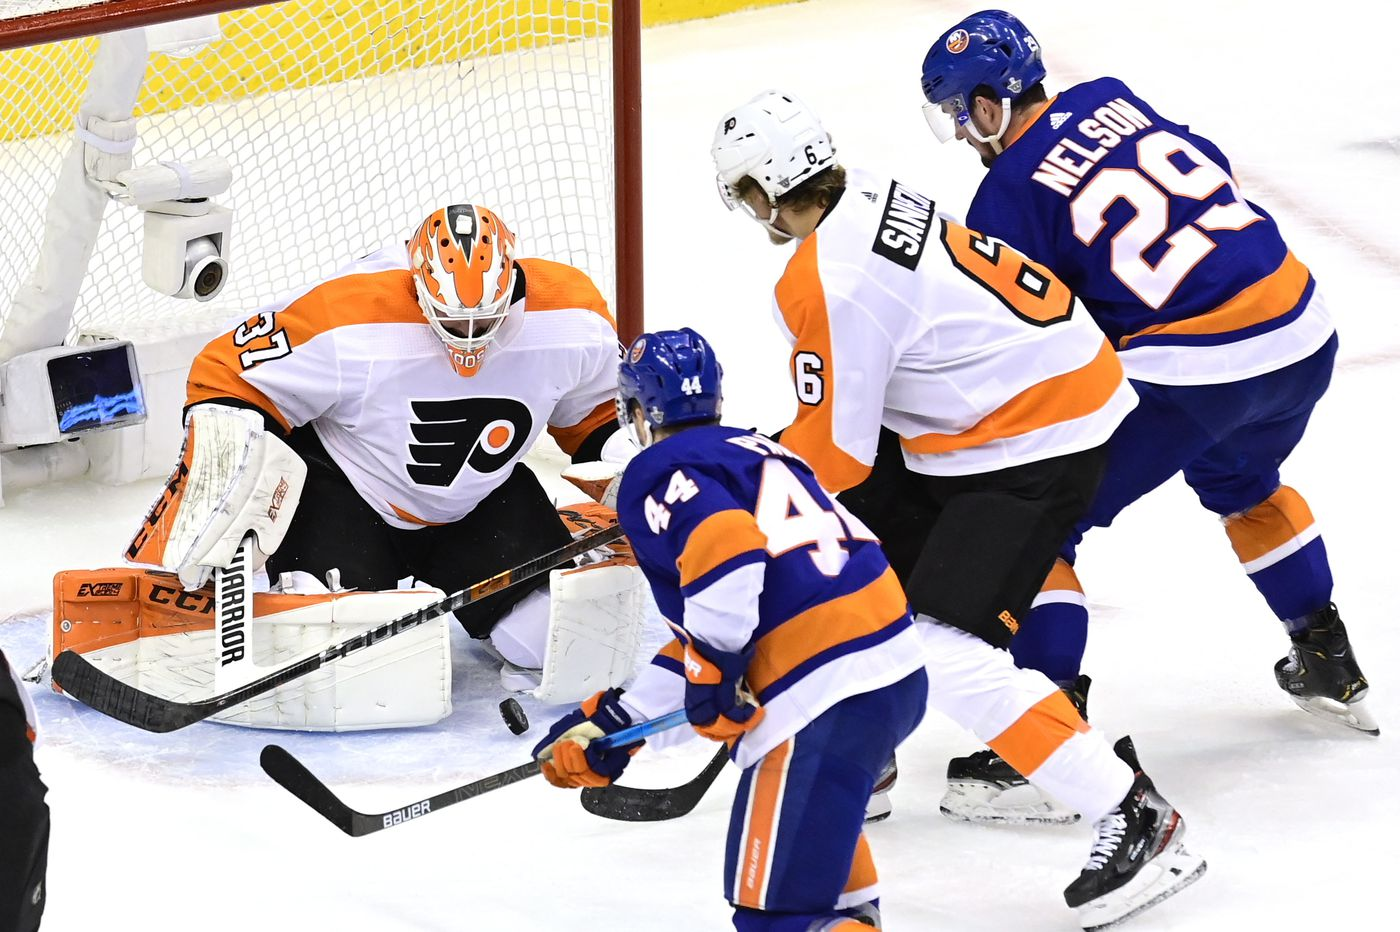 Brock Nelson's two goals help Isles put Flyers on brink of elimination